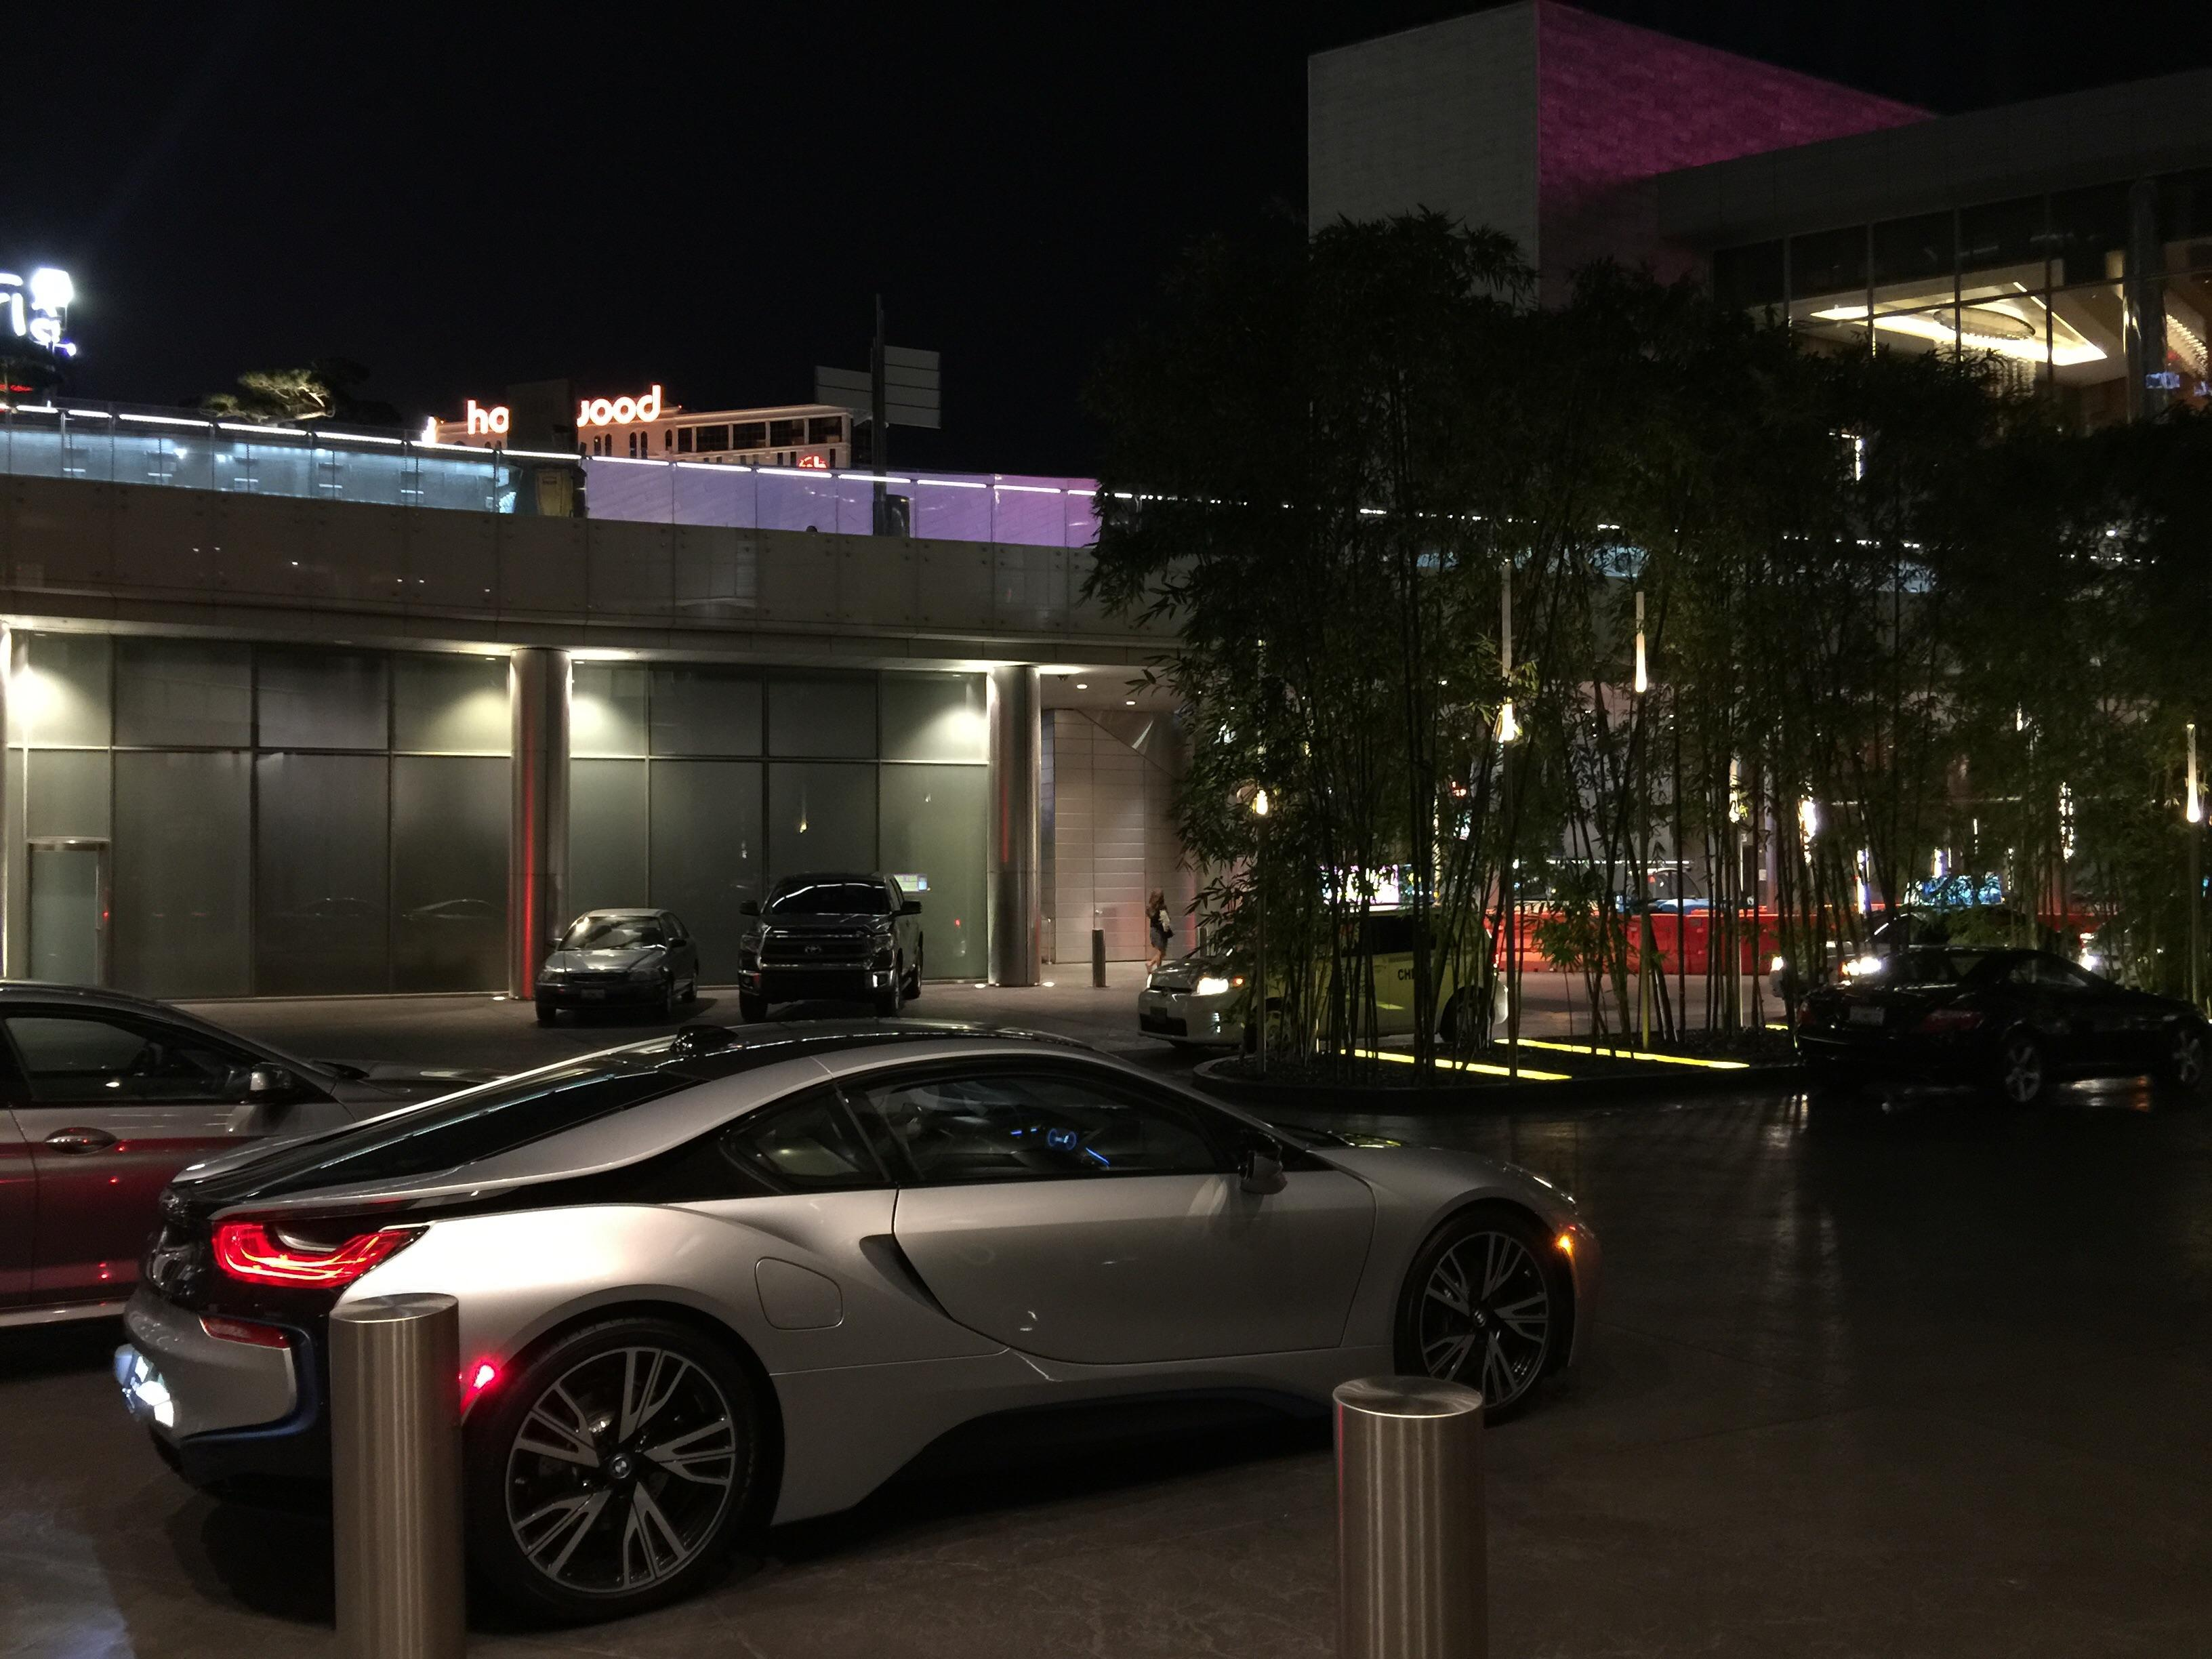 Bmw i8 edrive electric car available in Las Vegas